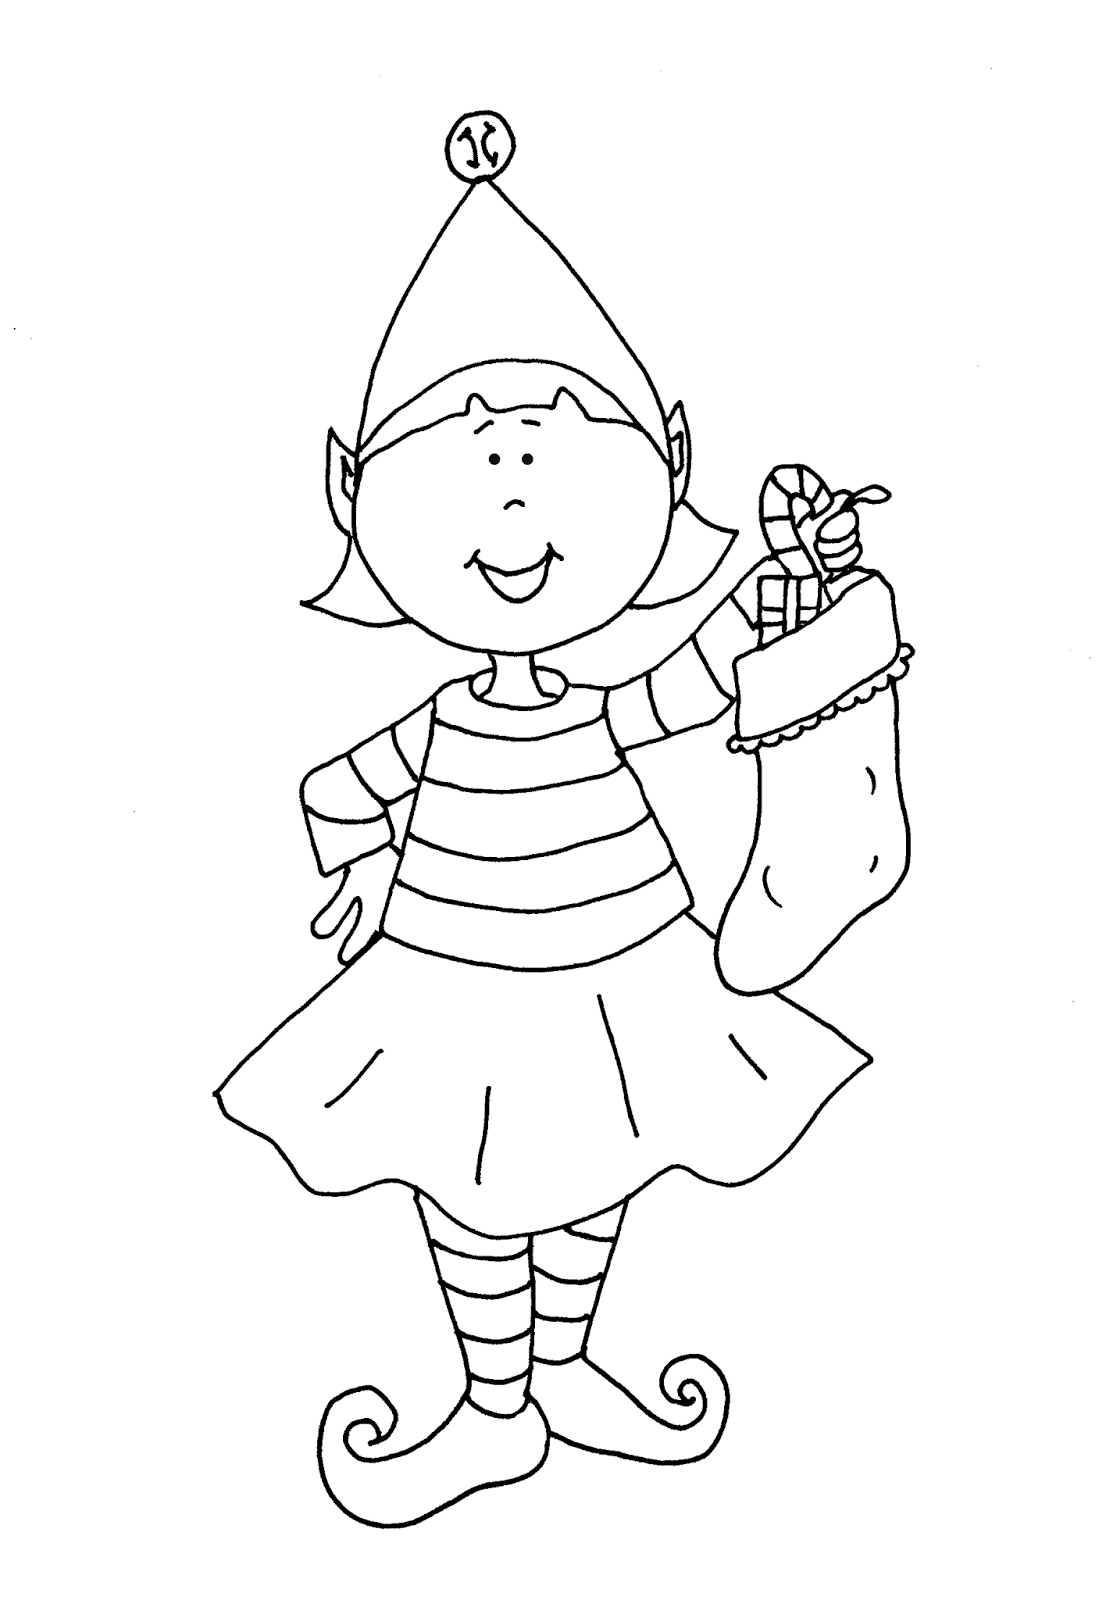 coloring pages girl elf - photo#2